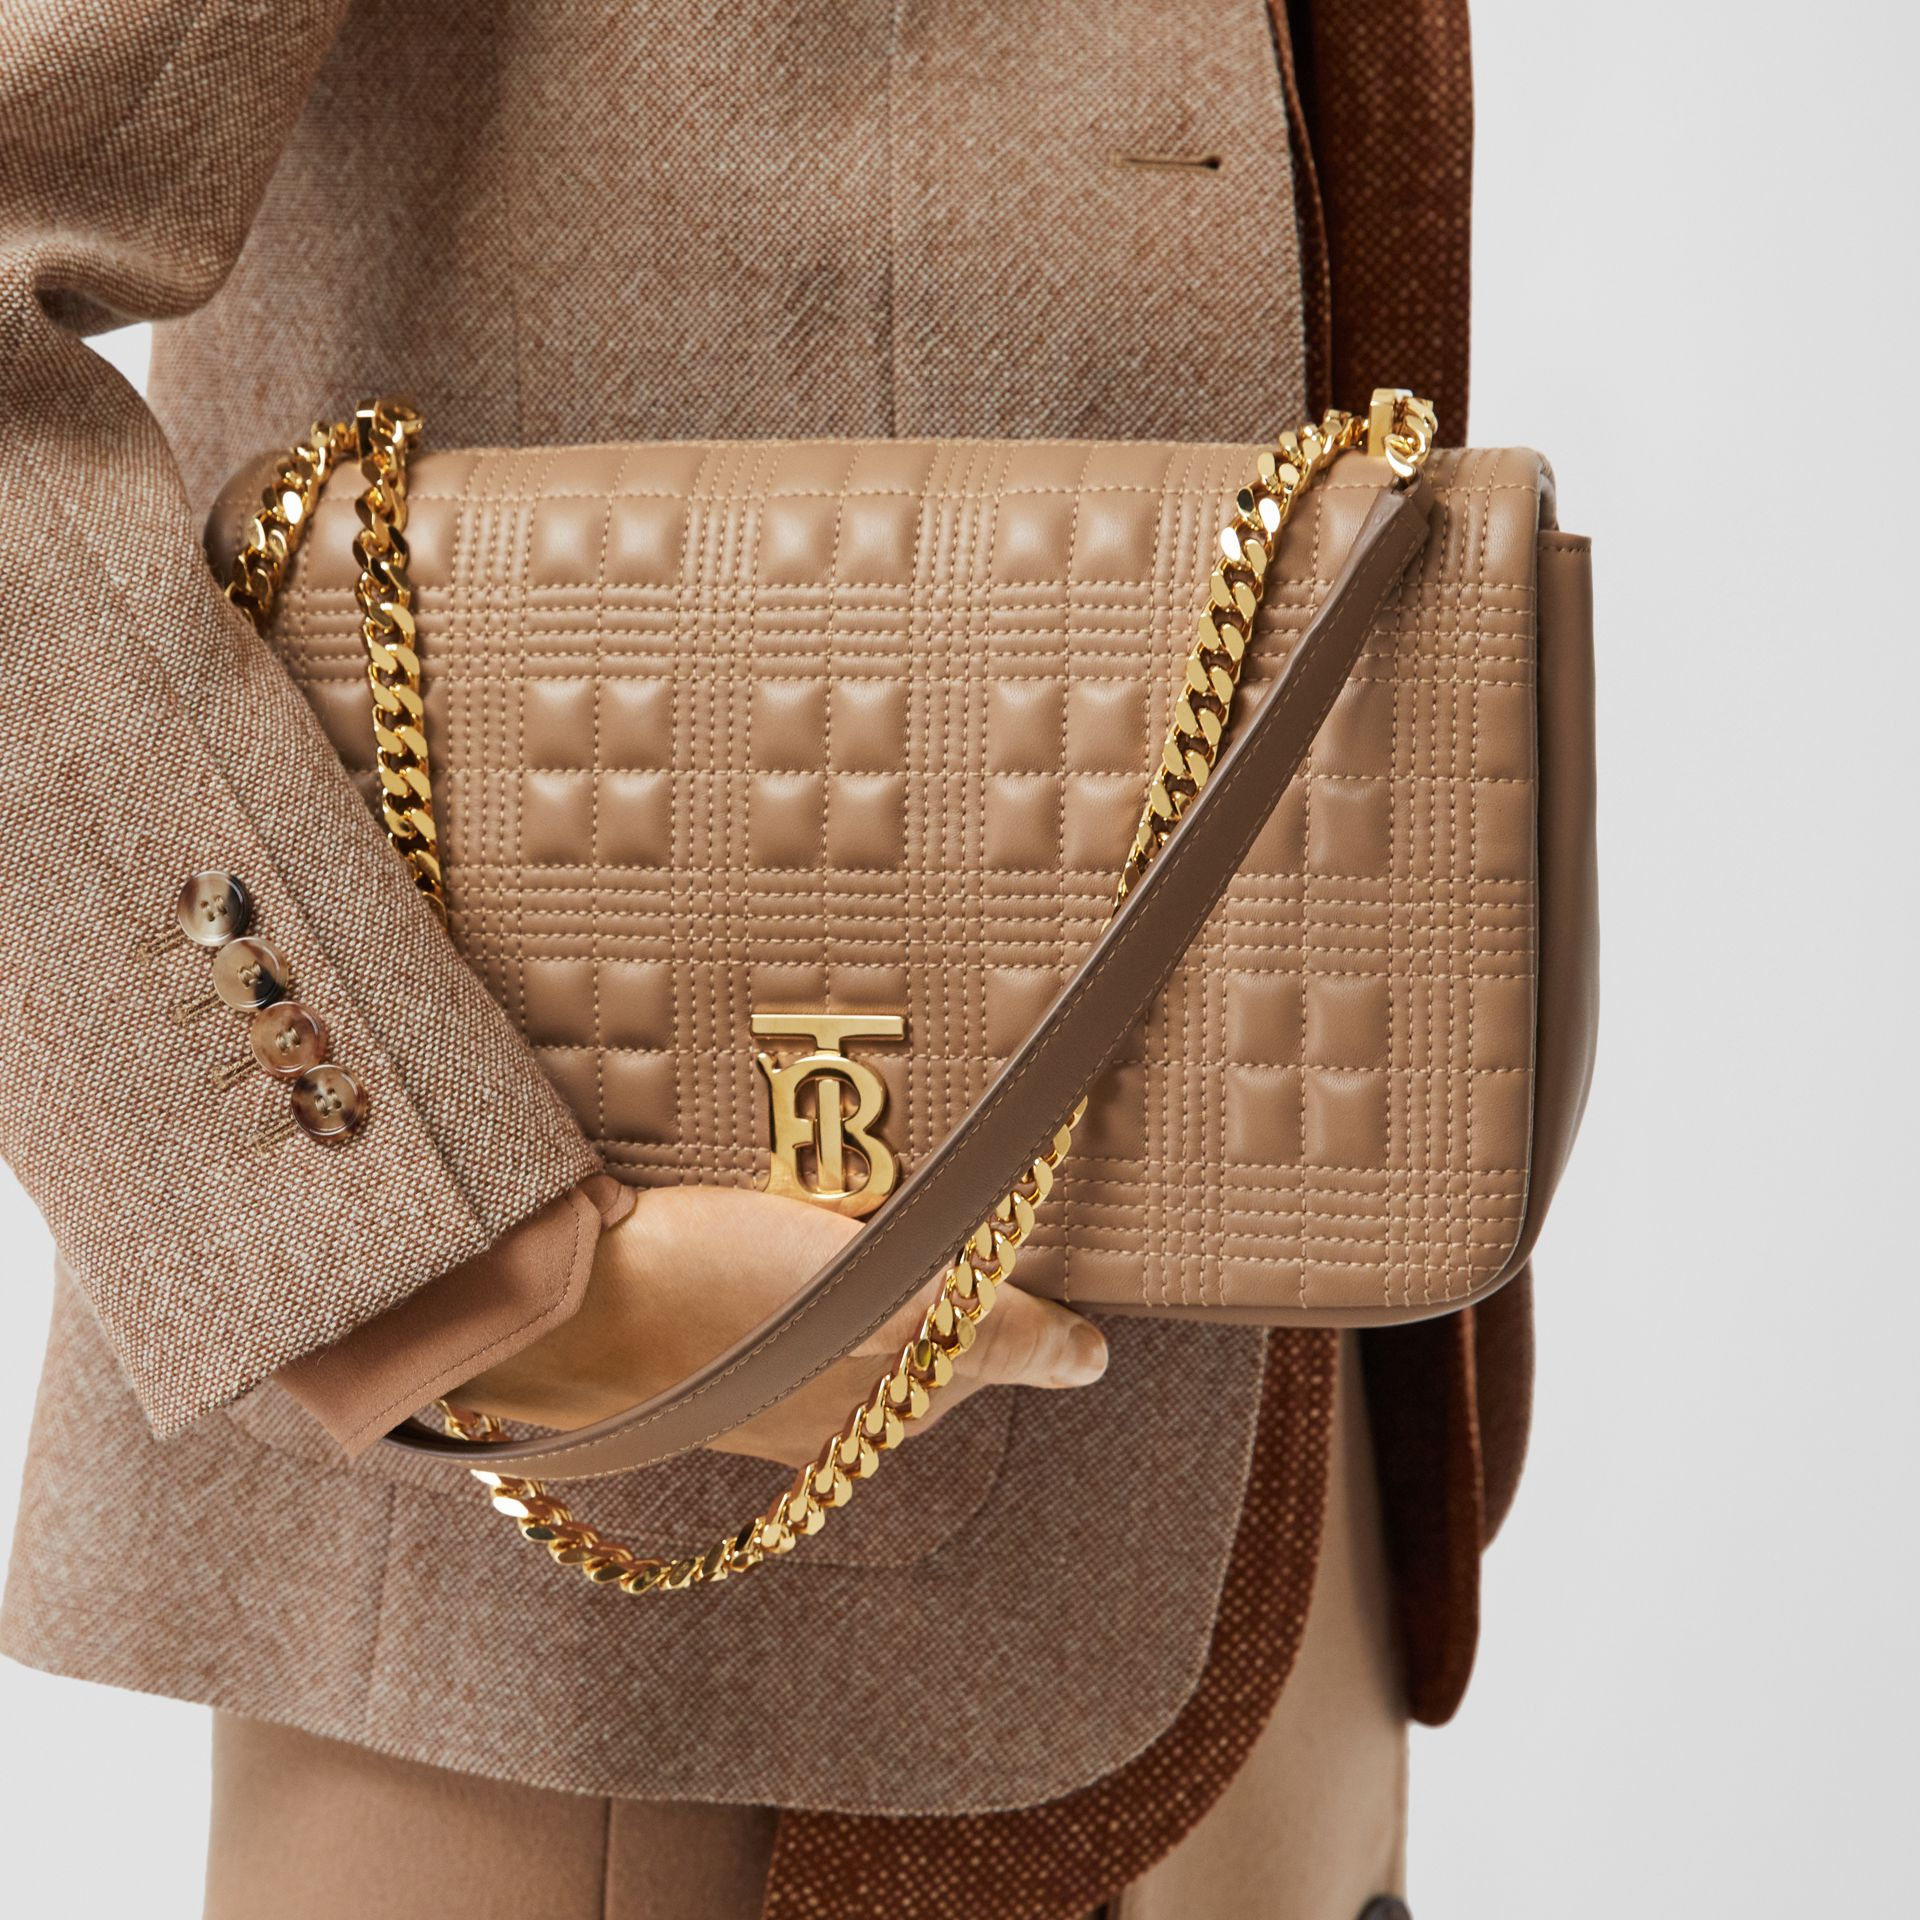 Medium Quilted Lambskin Lola Bag in Camel - Women | Burberry - gallery image 8